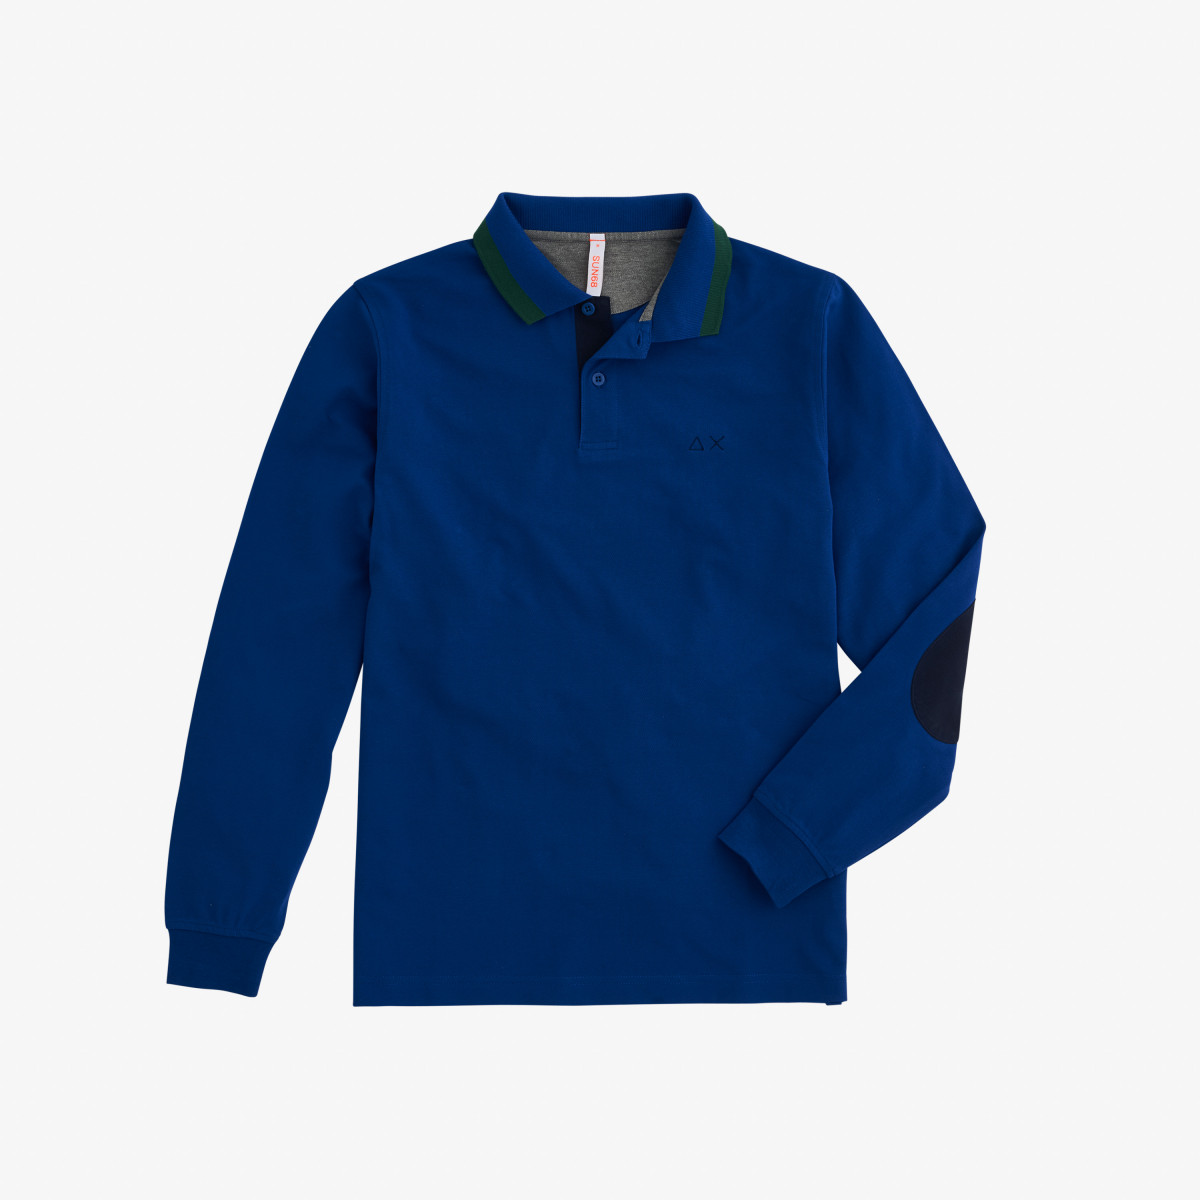 BOY'S POLO BIG STRIPES L/S DEEP BLUE